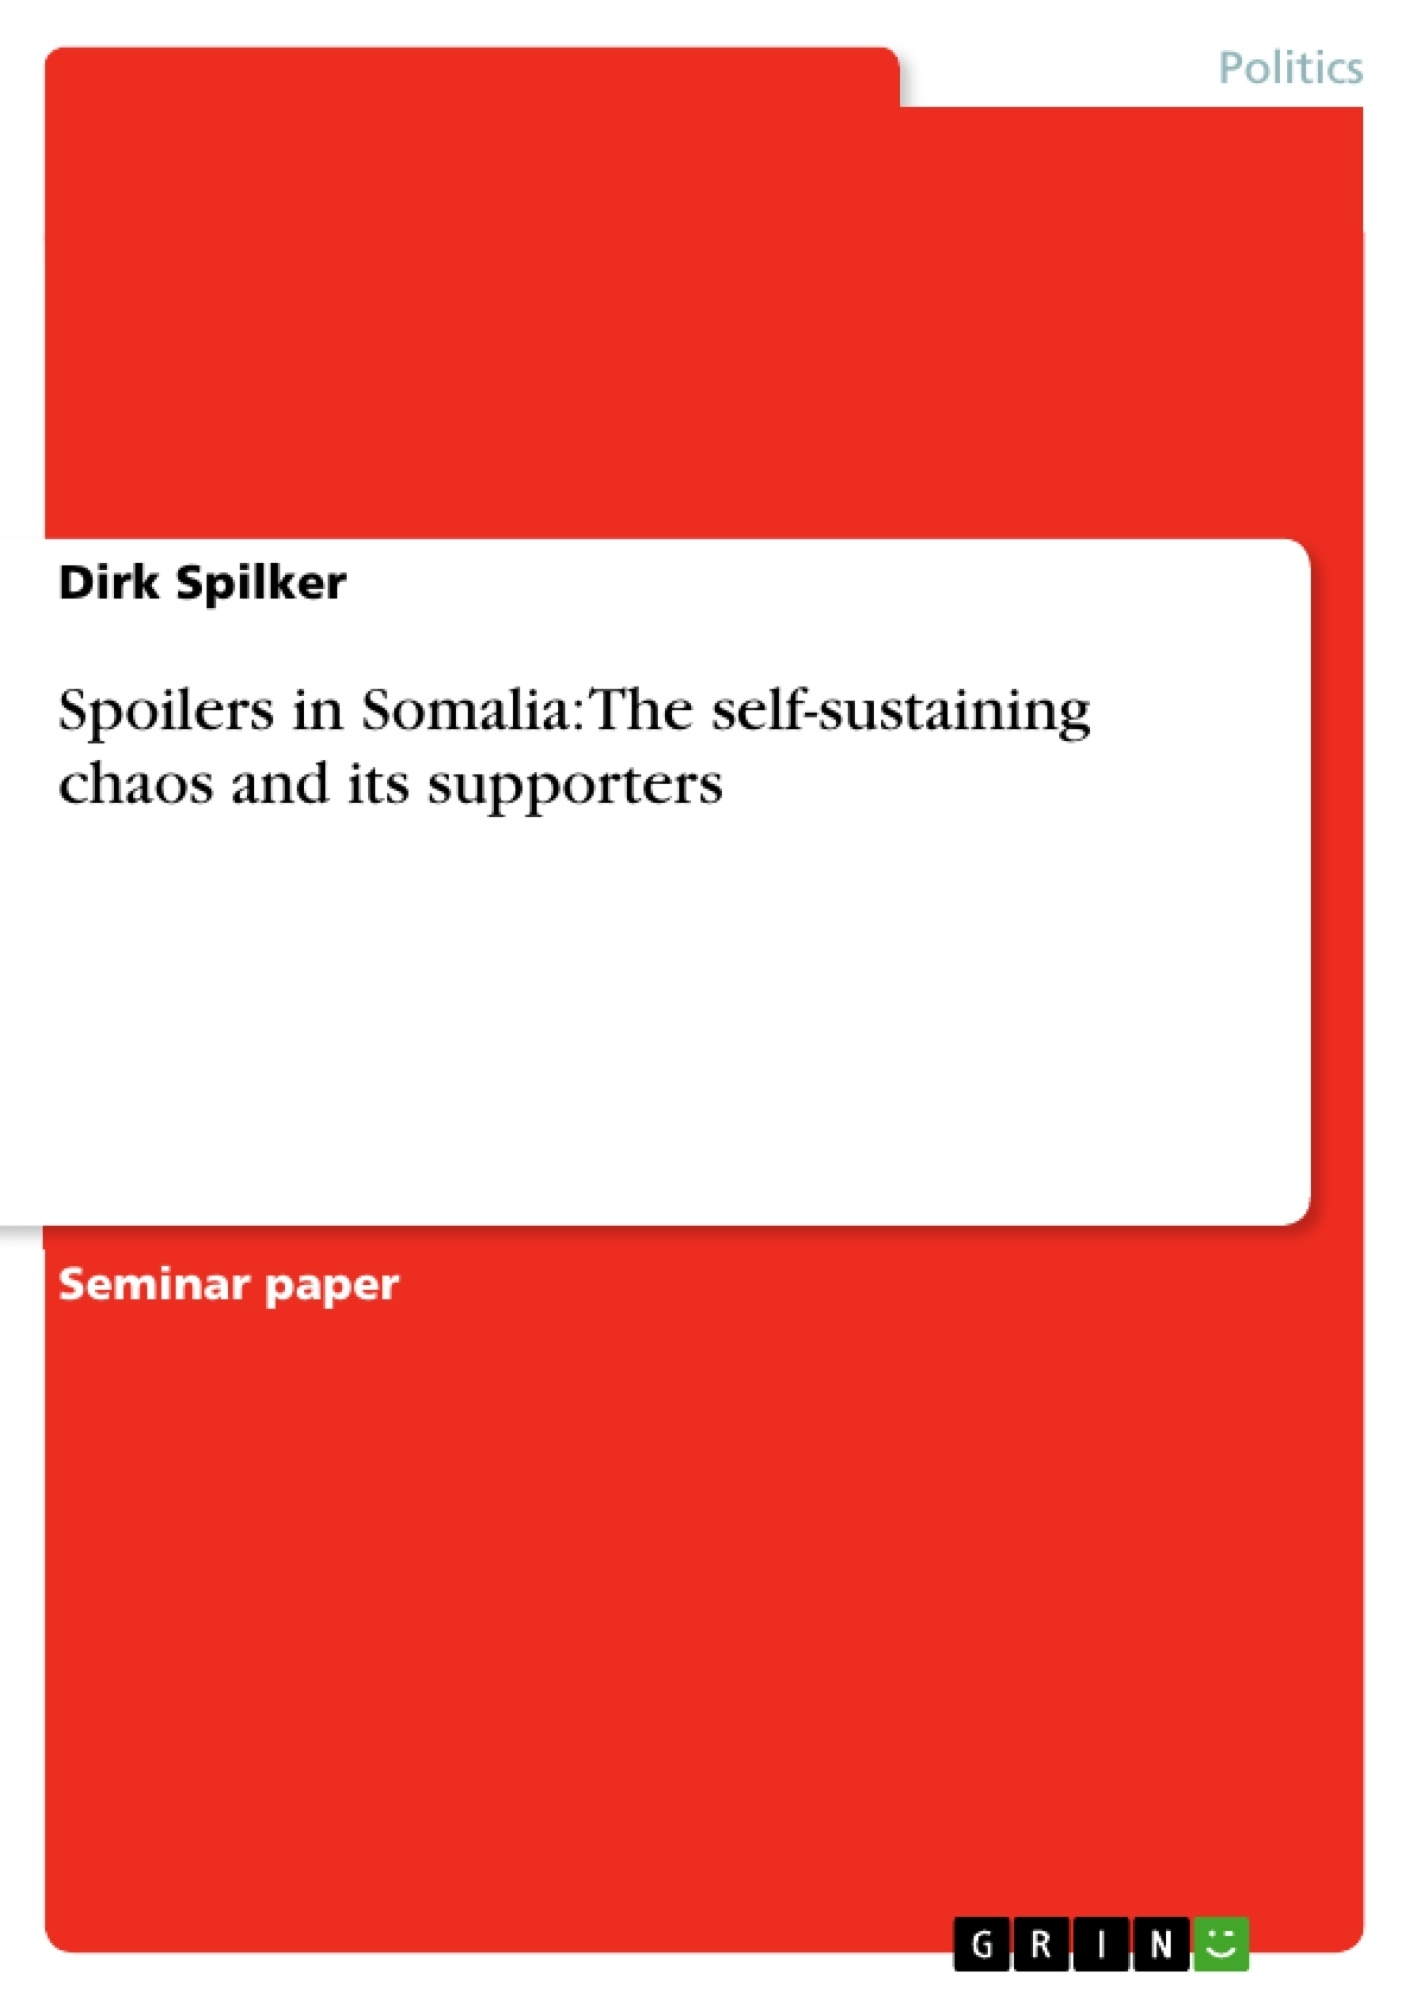 Title: Spoilers in Somalia: The self-sustaining chaos and its supporters